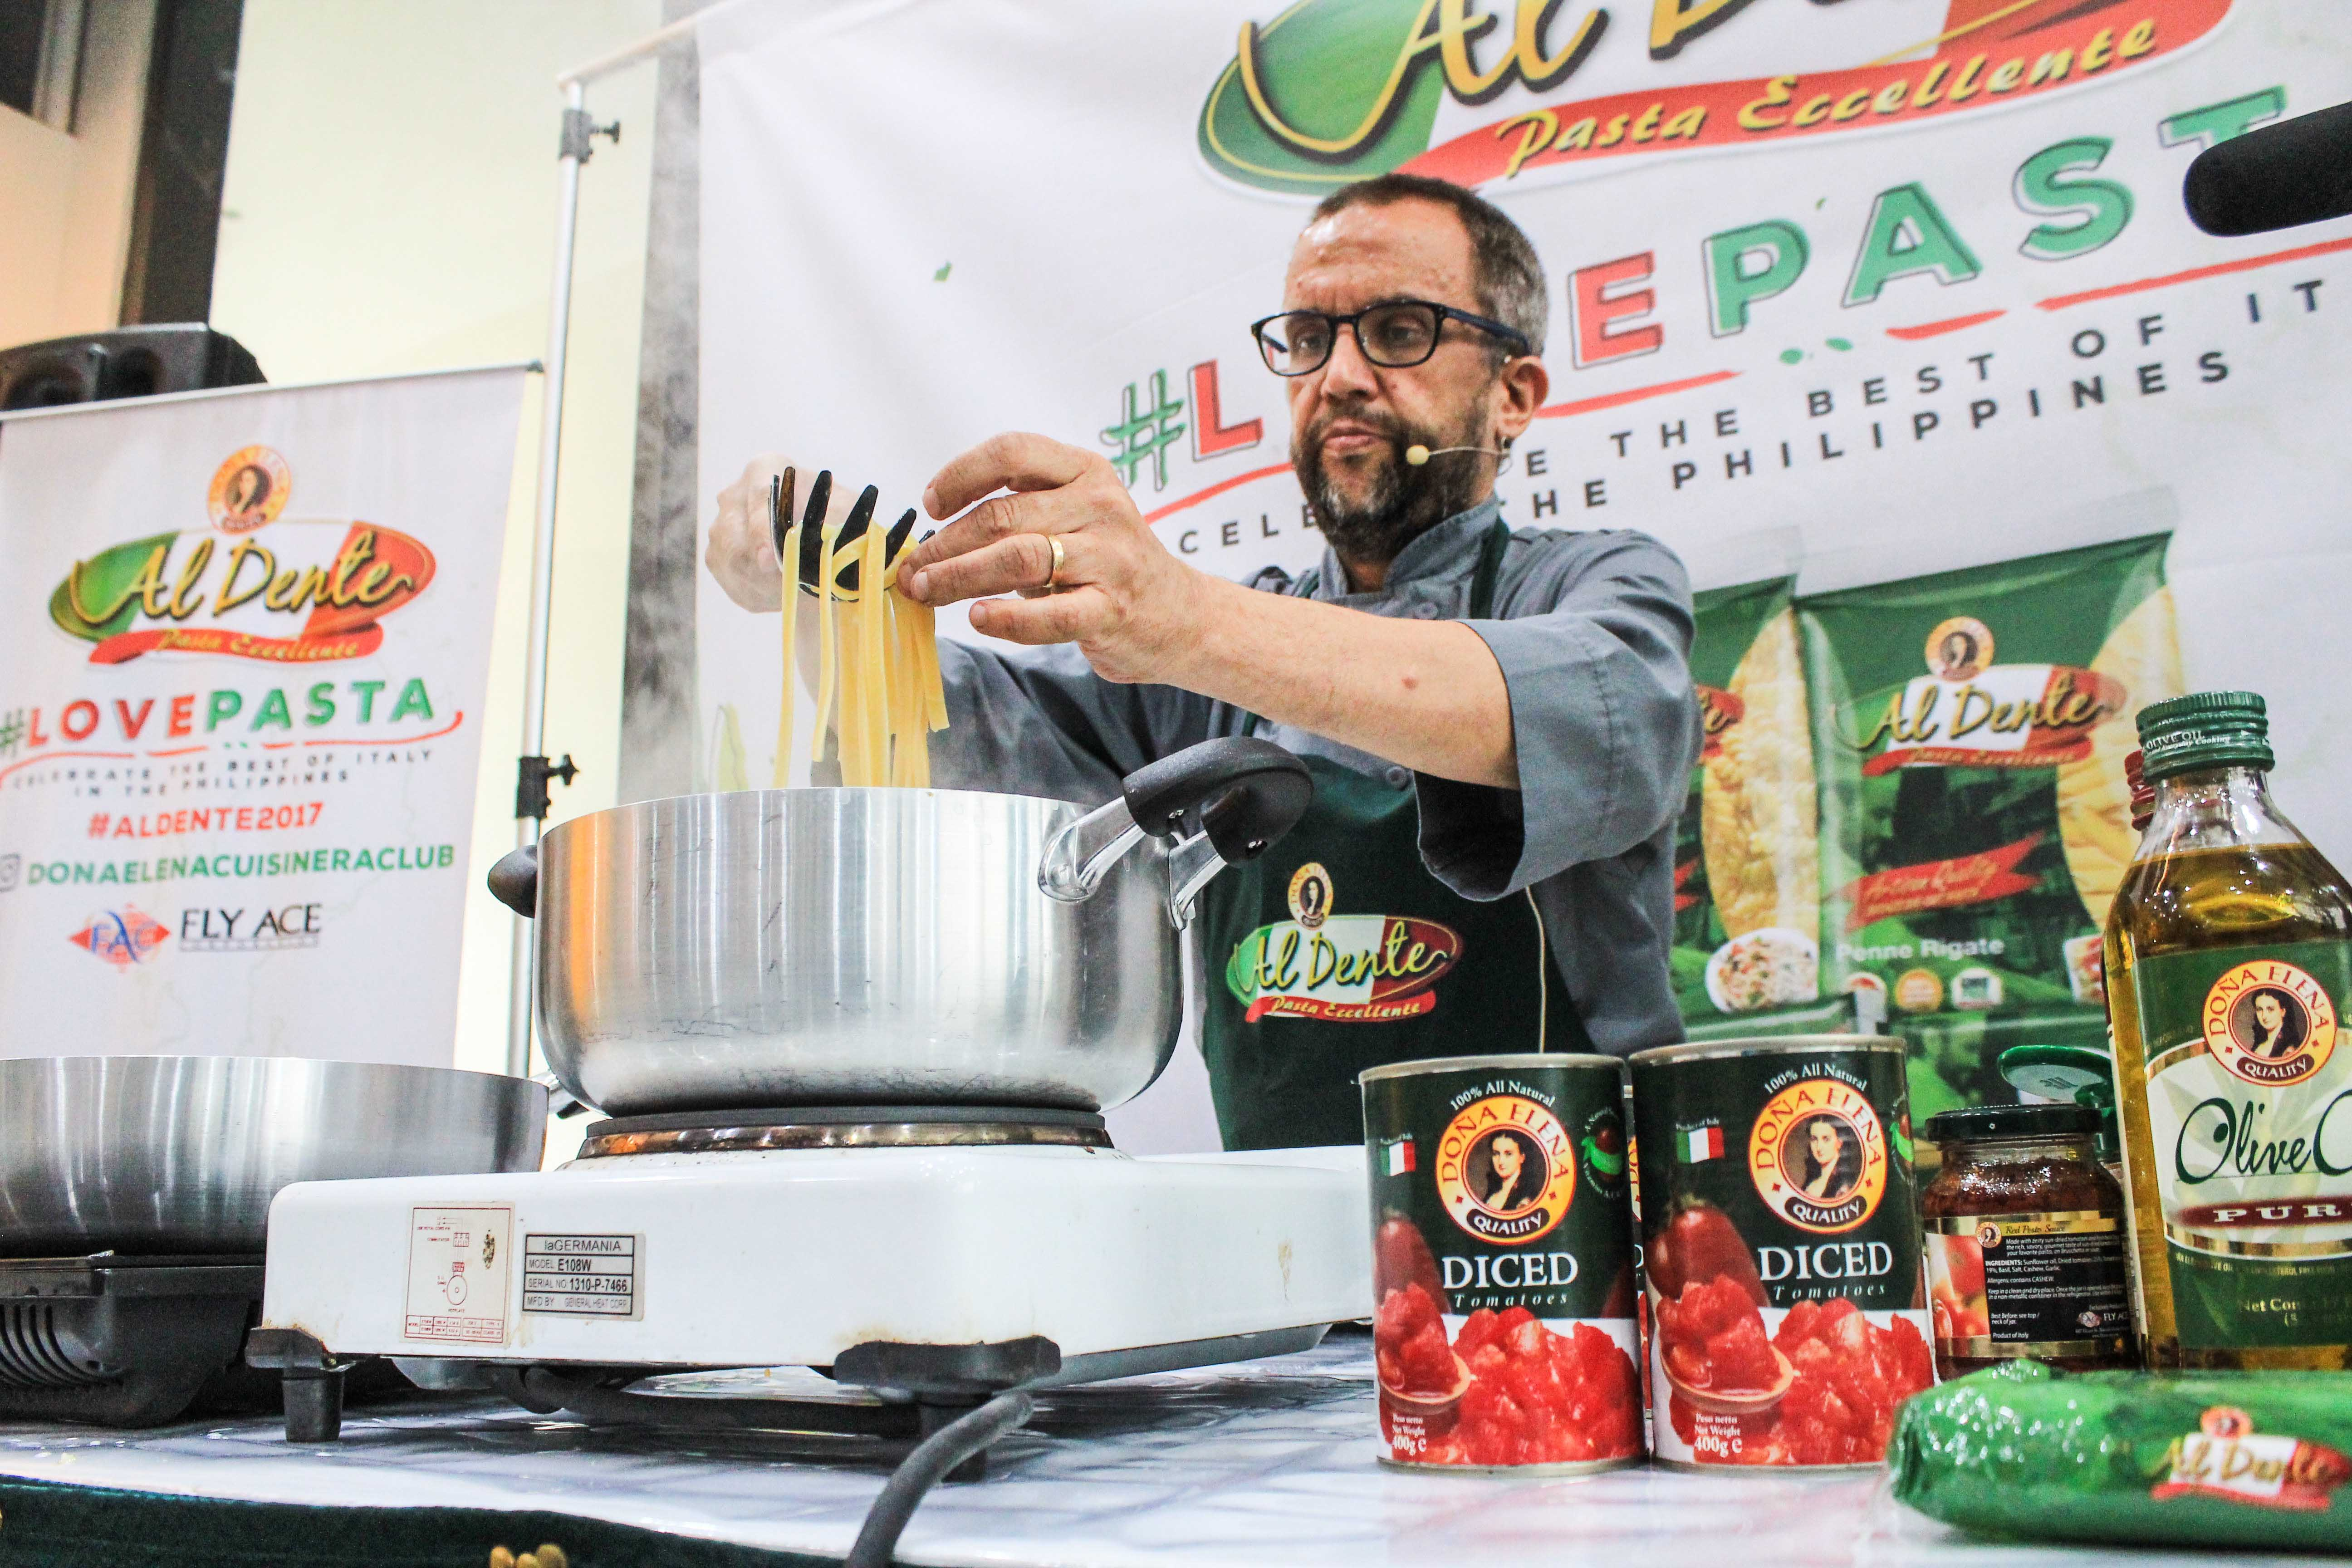 Chef Chris Locher demonstrates perfectly al dente Italian dishes using Doña Elena products.jpg